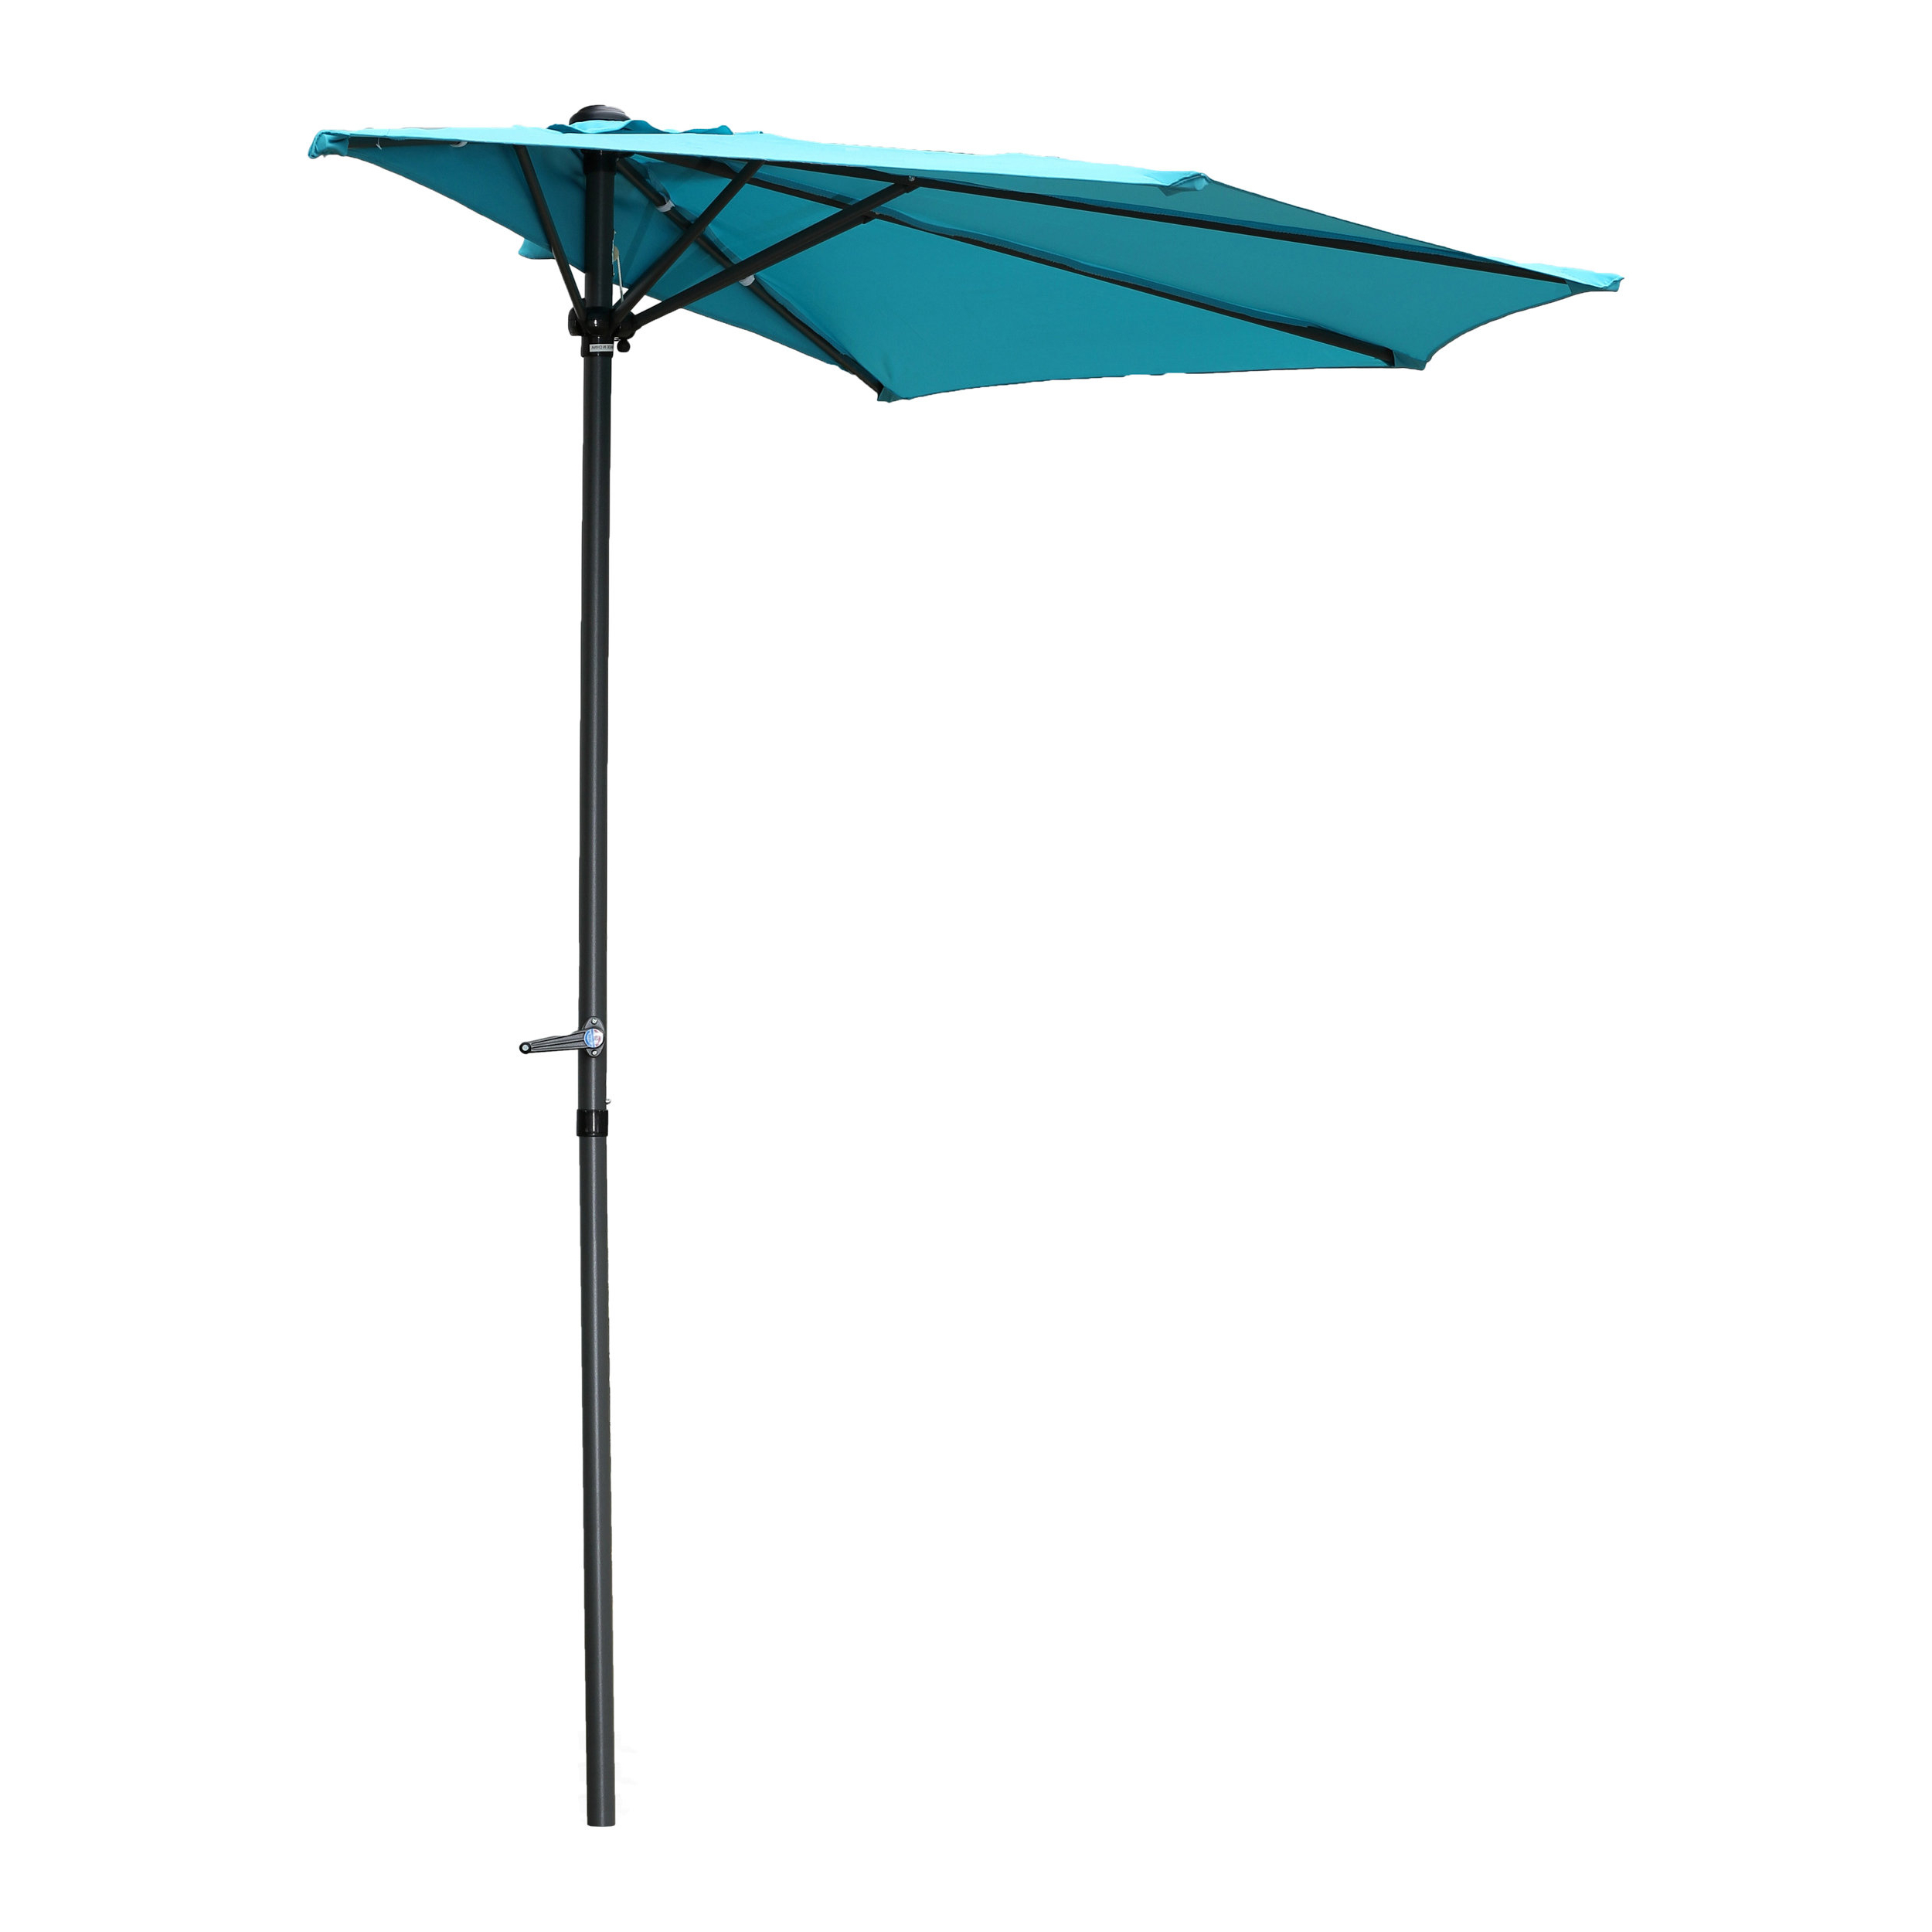 Sheehan Market Umbrellas With Regard To Preferred Dade City North 9' Half Market Umbrella (View 16 of 20)